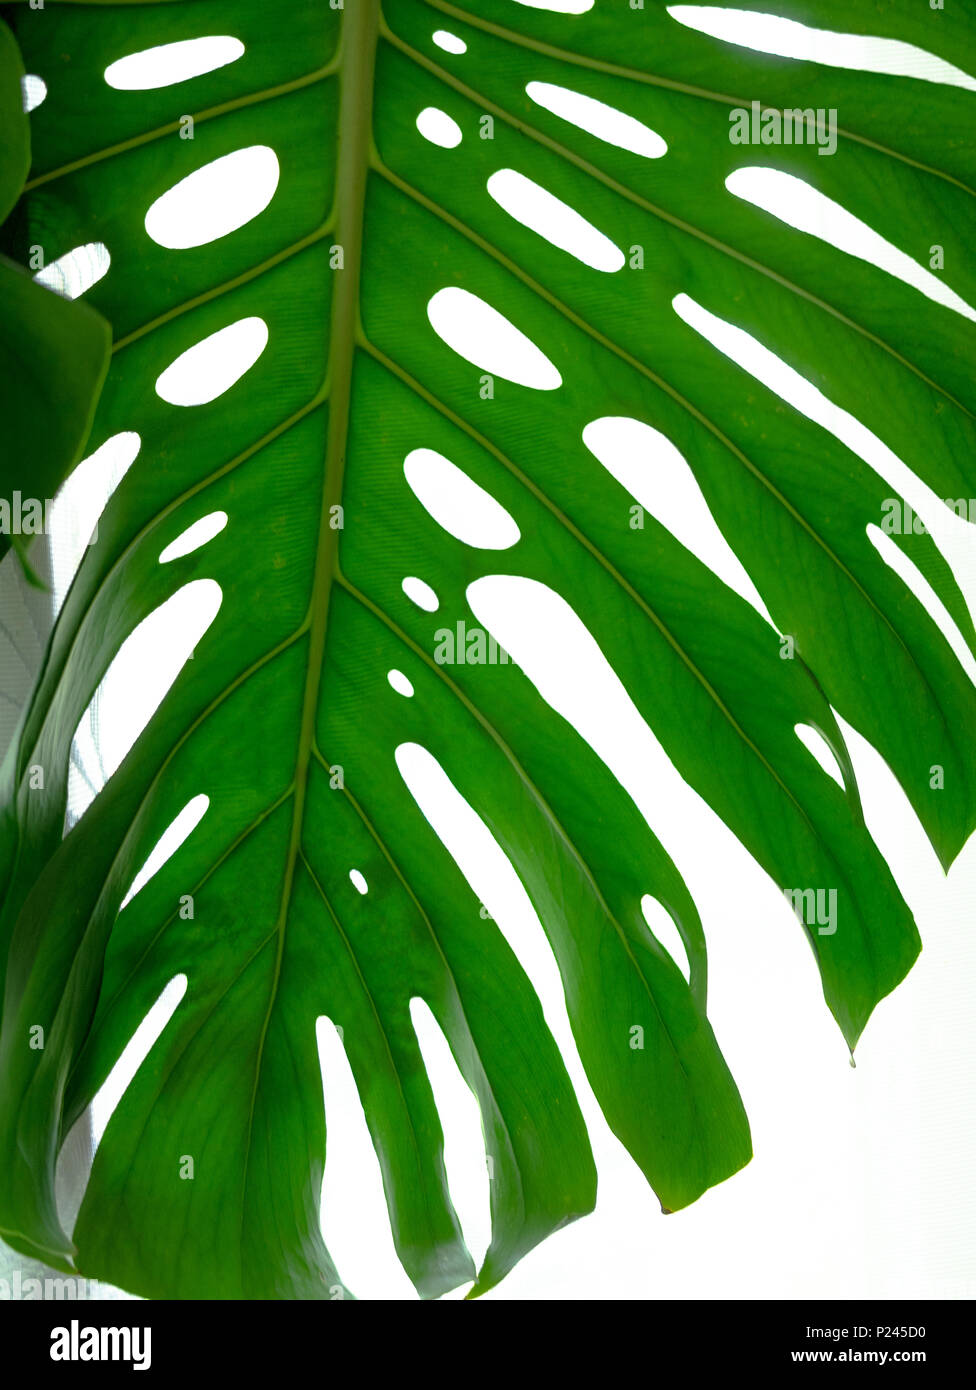 Real Tropical Leaves On White Backgrounds Botanical Nature Concepts Flat Lay Design Green Leaf Stock Photo Alamy The most common real leaf tropical material is metal. https www alamy com real tropical leaves on white backgroundsbotanical nature conceptsflat lay design green leaf image207845820 html